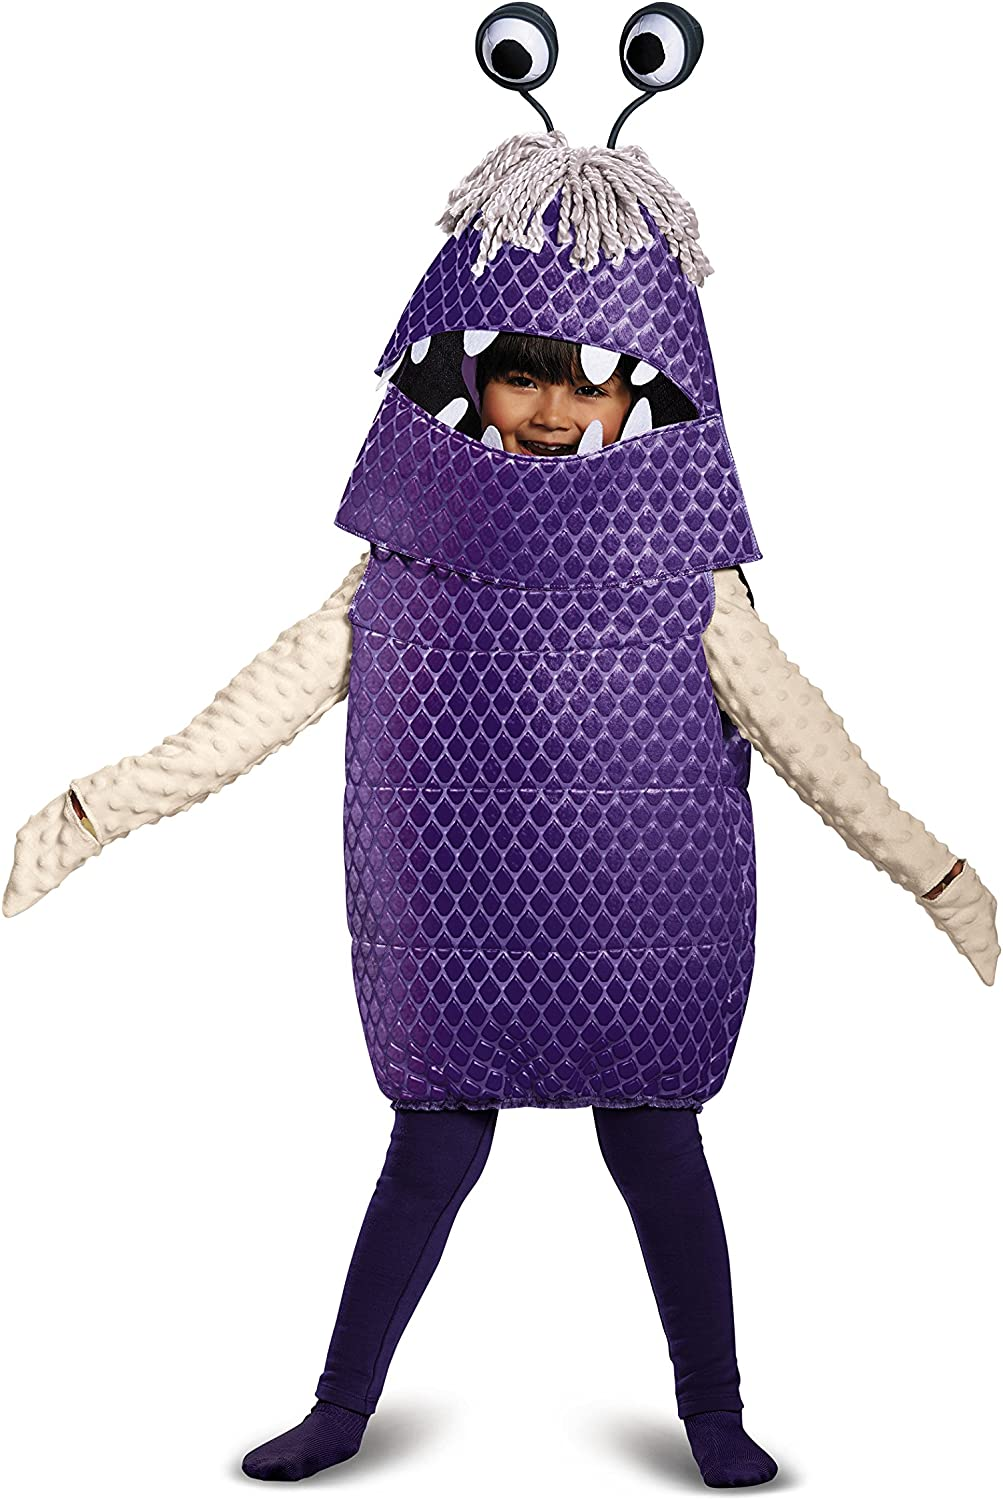 Amazon Com Boo Deluxe Toddler Costume Purple Small 2t Toys Games